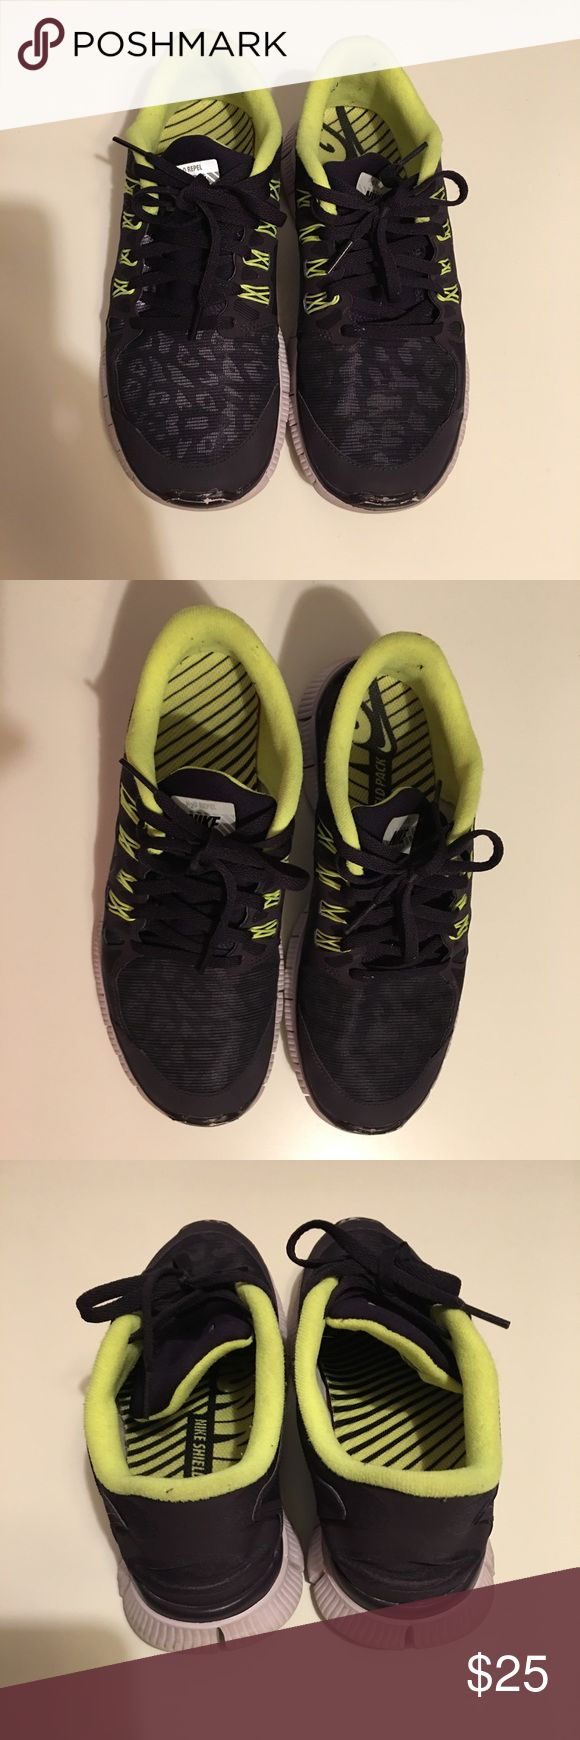 Nike Free 5.0 H2O Repel Running Sneakers Great Condition  No stains or rips  Smoke free environment Women's  Size 9 Color/pattern deep purple cheetah/leopard Nike Shoes Athletic Shoes